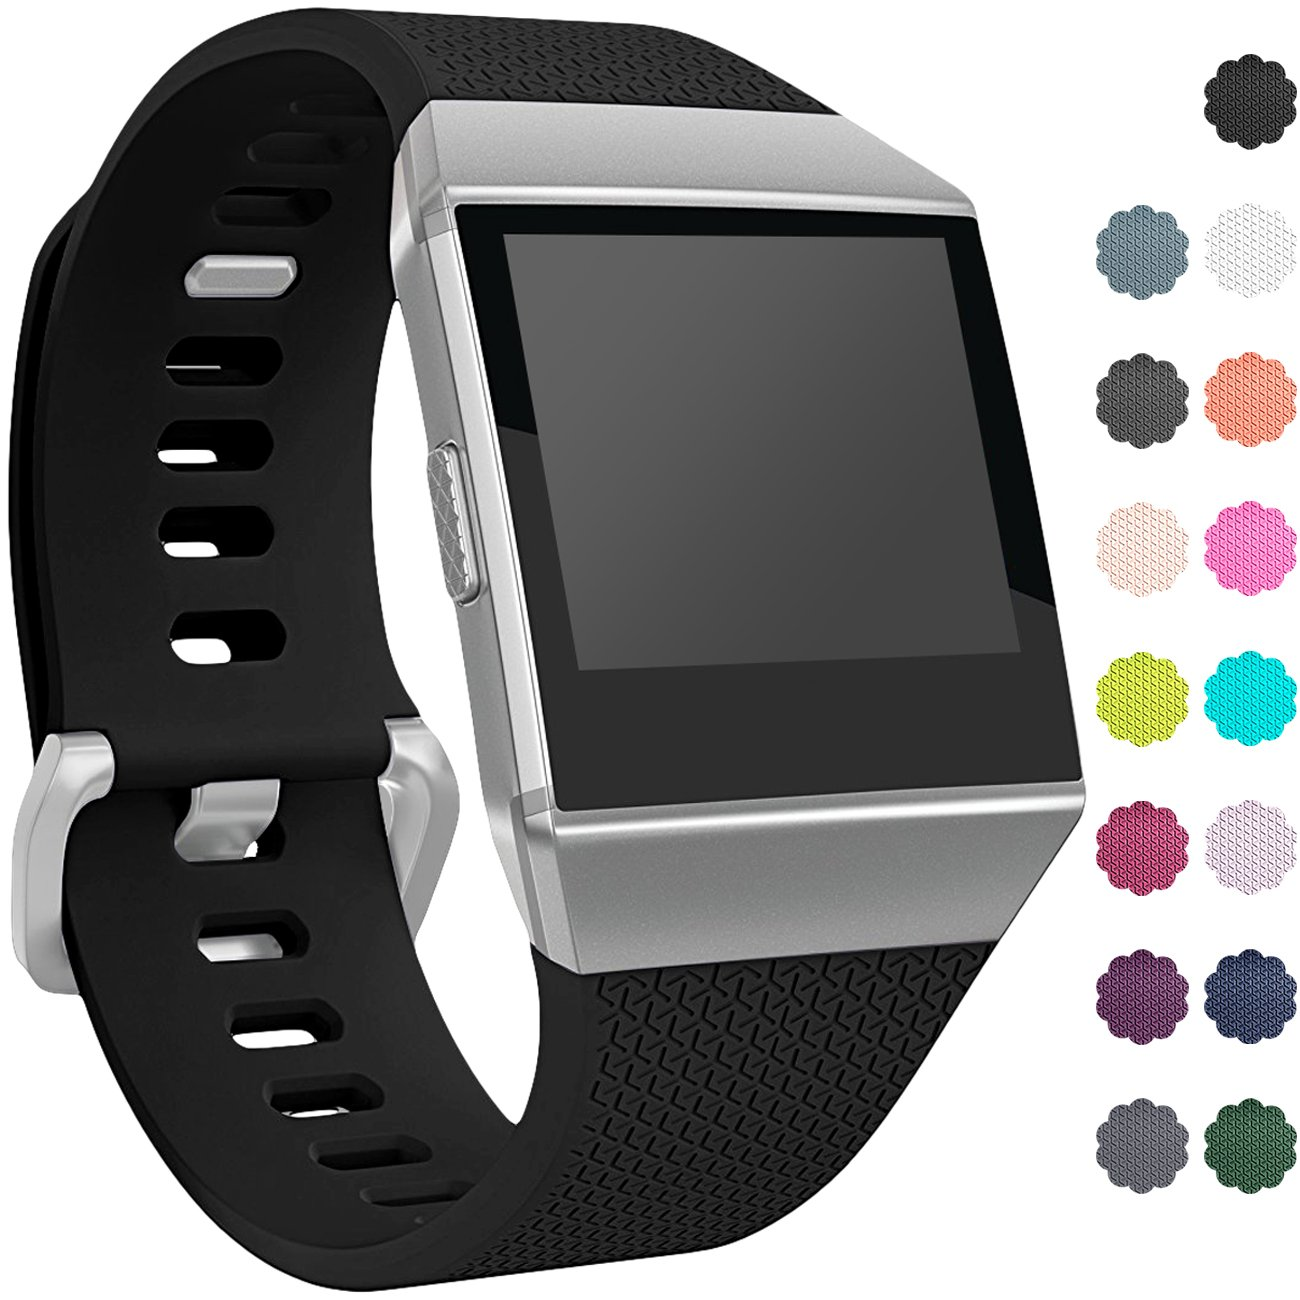 c2febe20f Fitbit Ionic Watch Bands, Replacement Sport Strap for Fitbit Ionic  Smartwatch